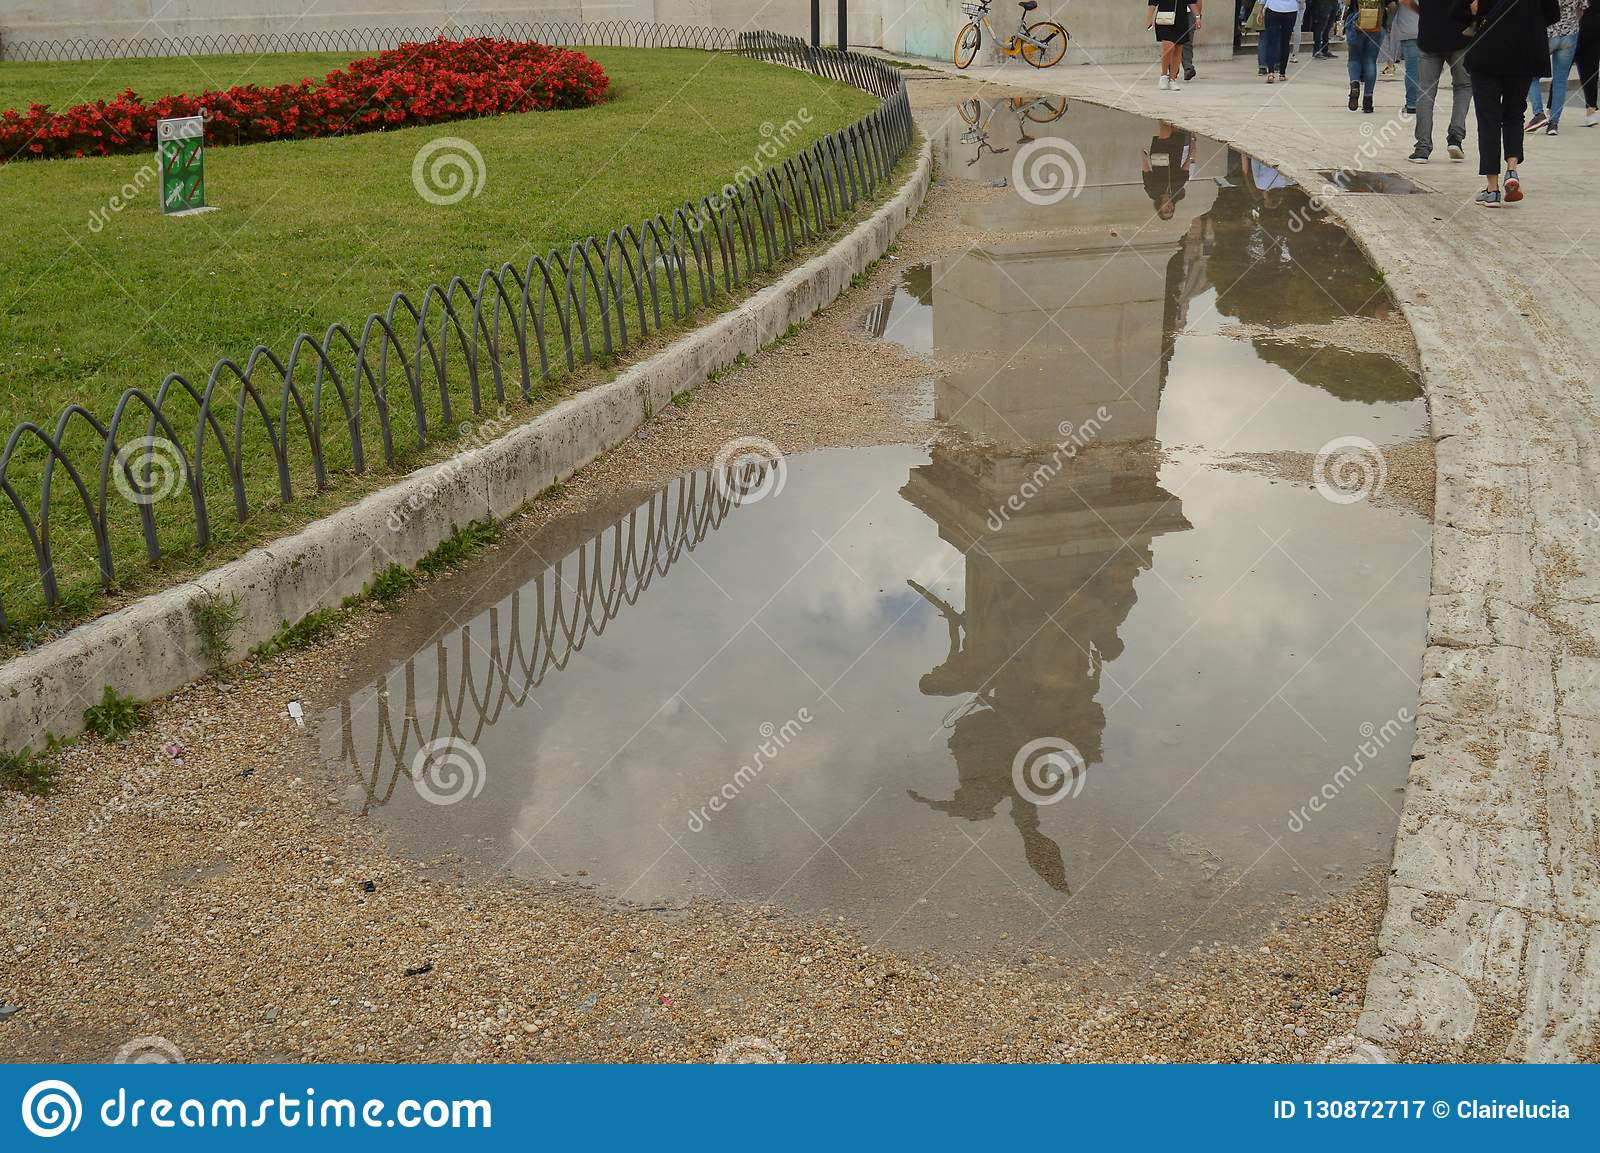 A reflection in a puddle after the rain Statue in the Vittoriano monument of Vittorio Emanuele II in Rome, Italy on